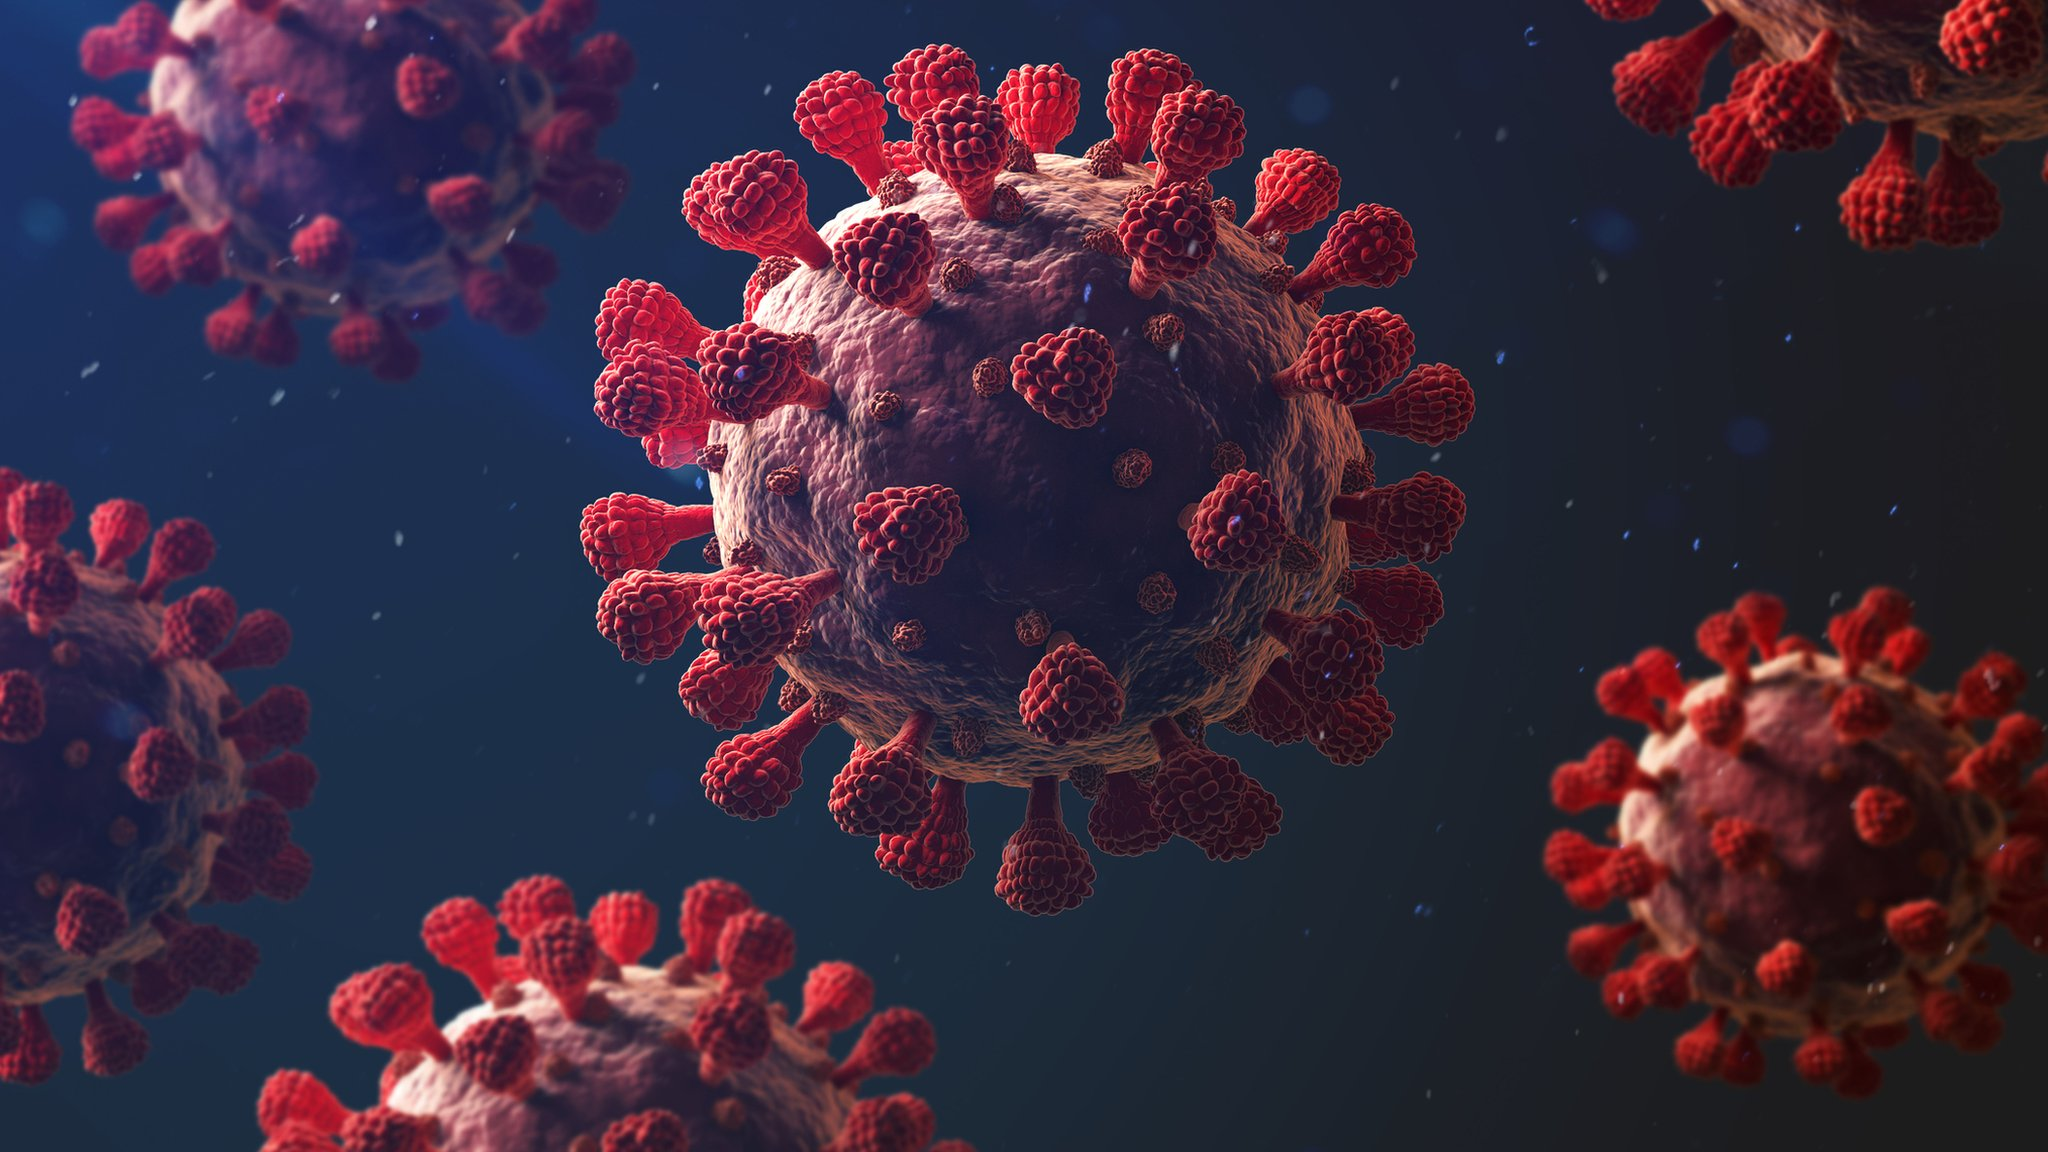 147 people were infected with COVID-19, one died